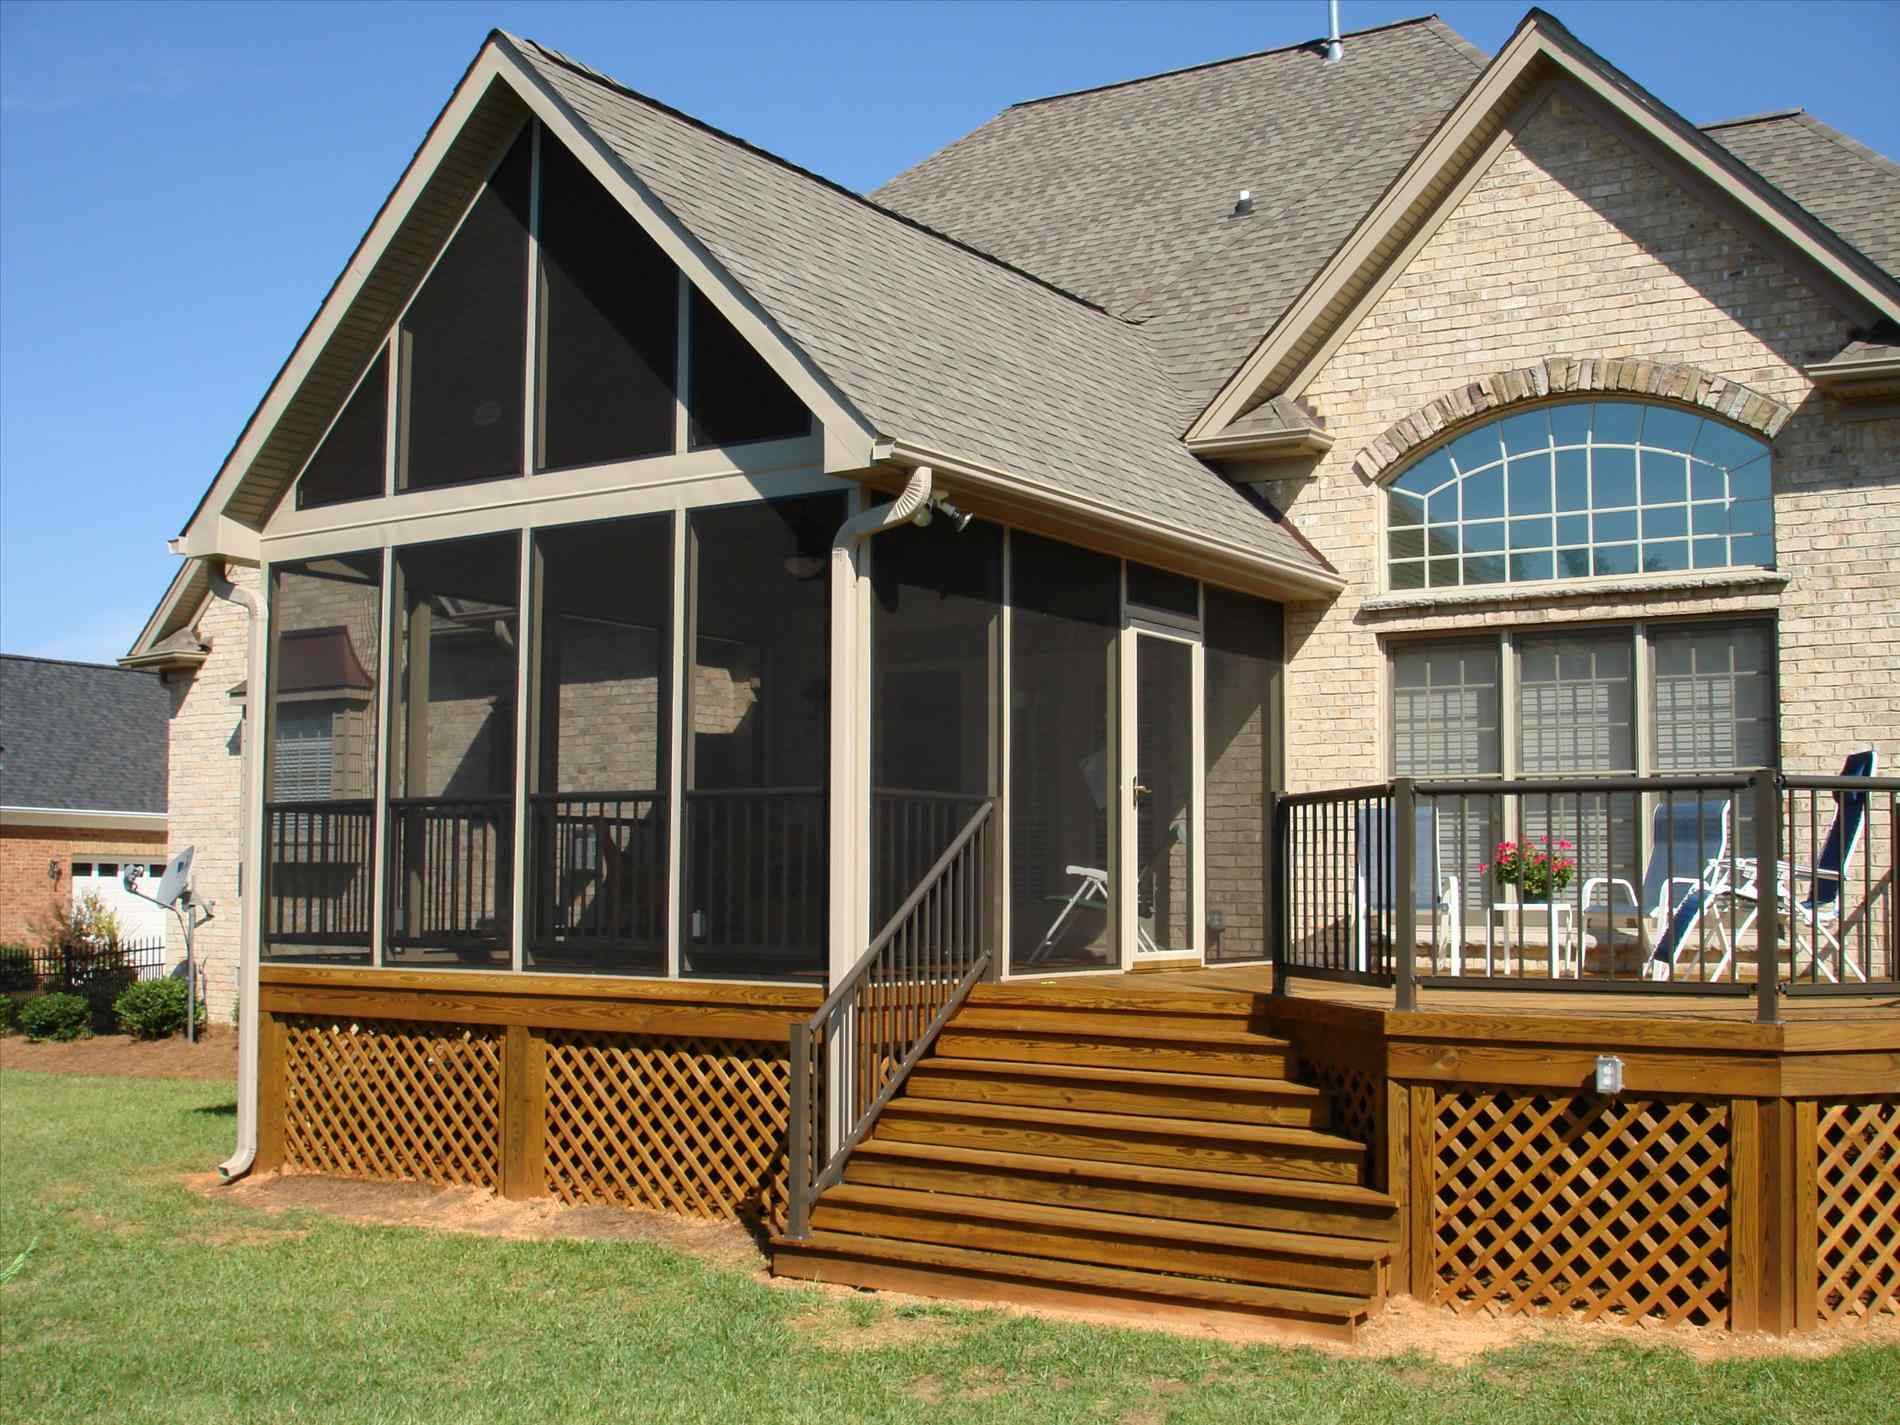 Mobile Home Porches | Front Porches for Modular Homes | Prefab Screened Porches